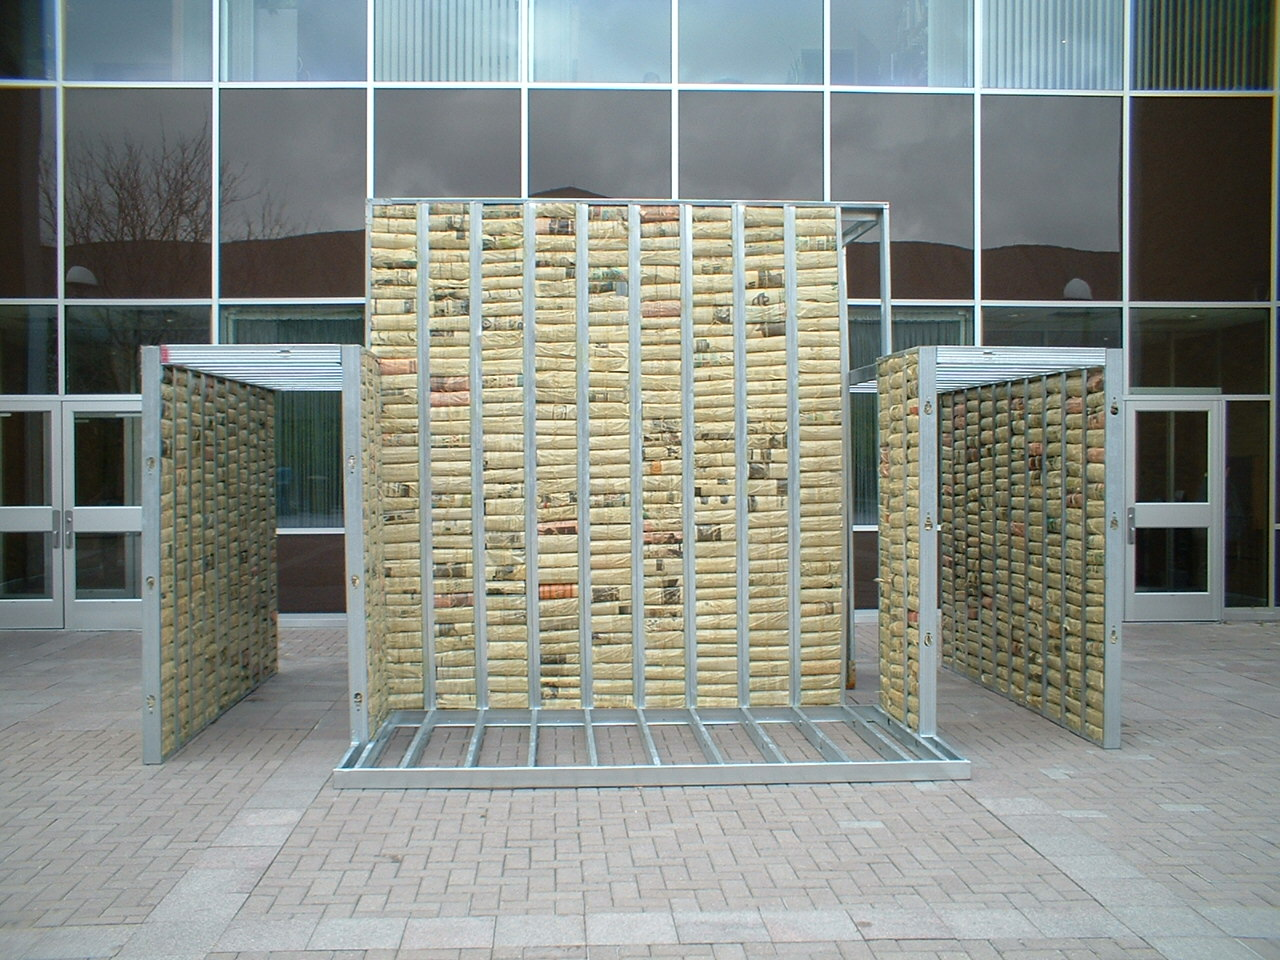 View of an installation called 'static' - 12' x 16' x 18'